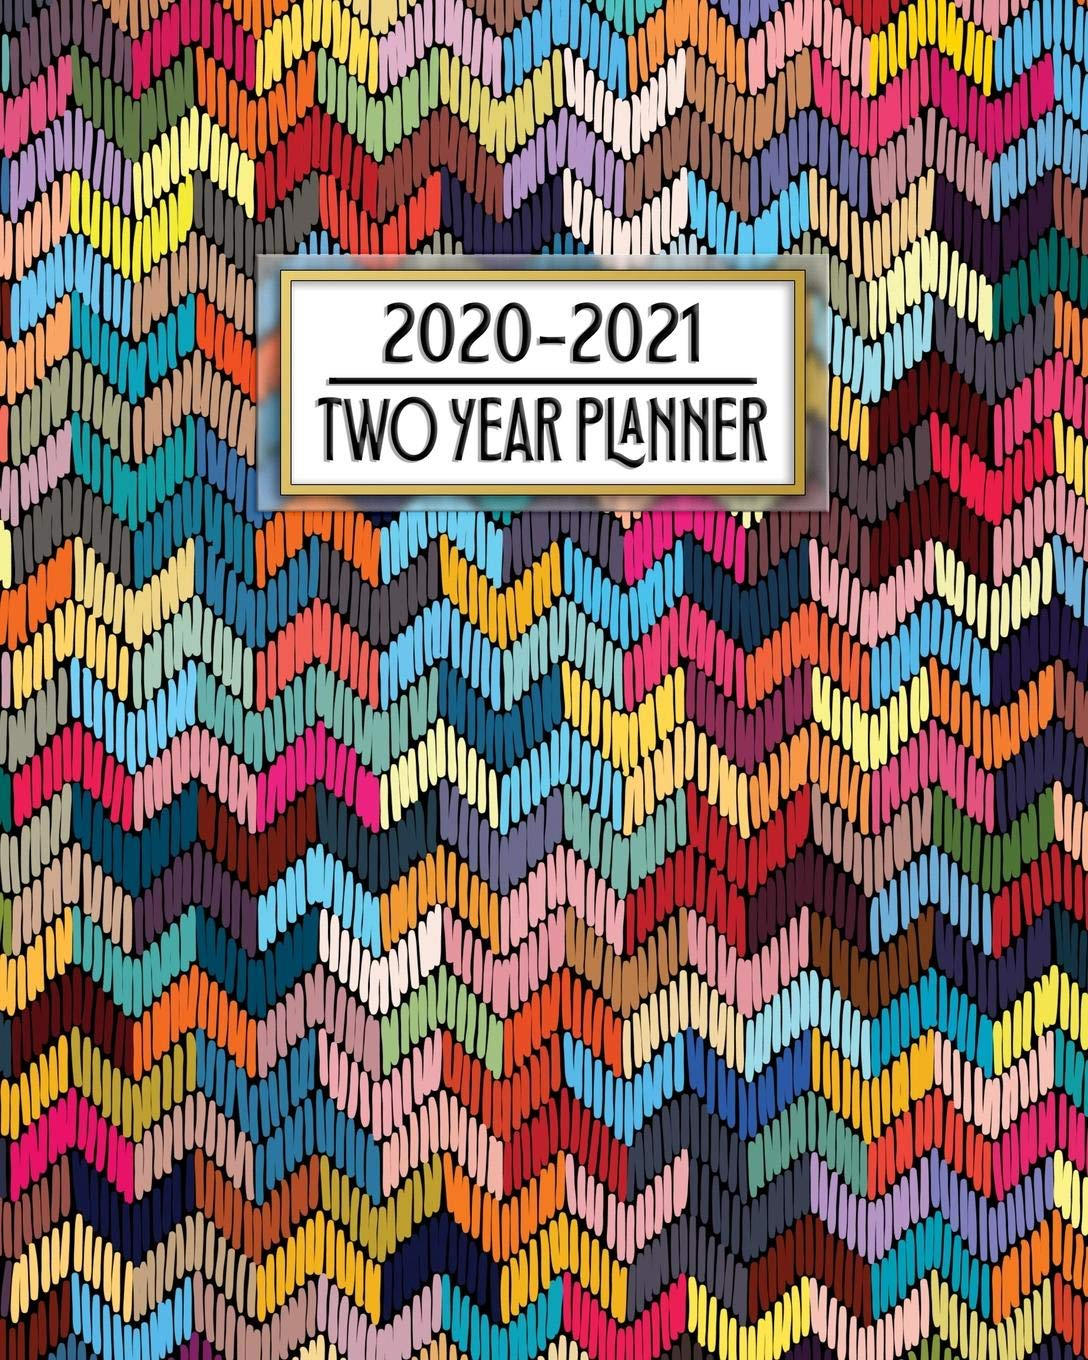 2020 - 2021 Two Year Planner: Native Cross Stitch Rug ...